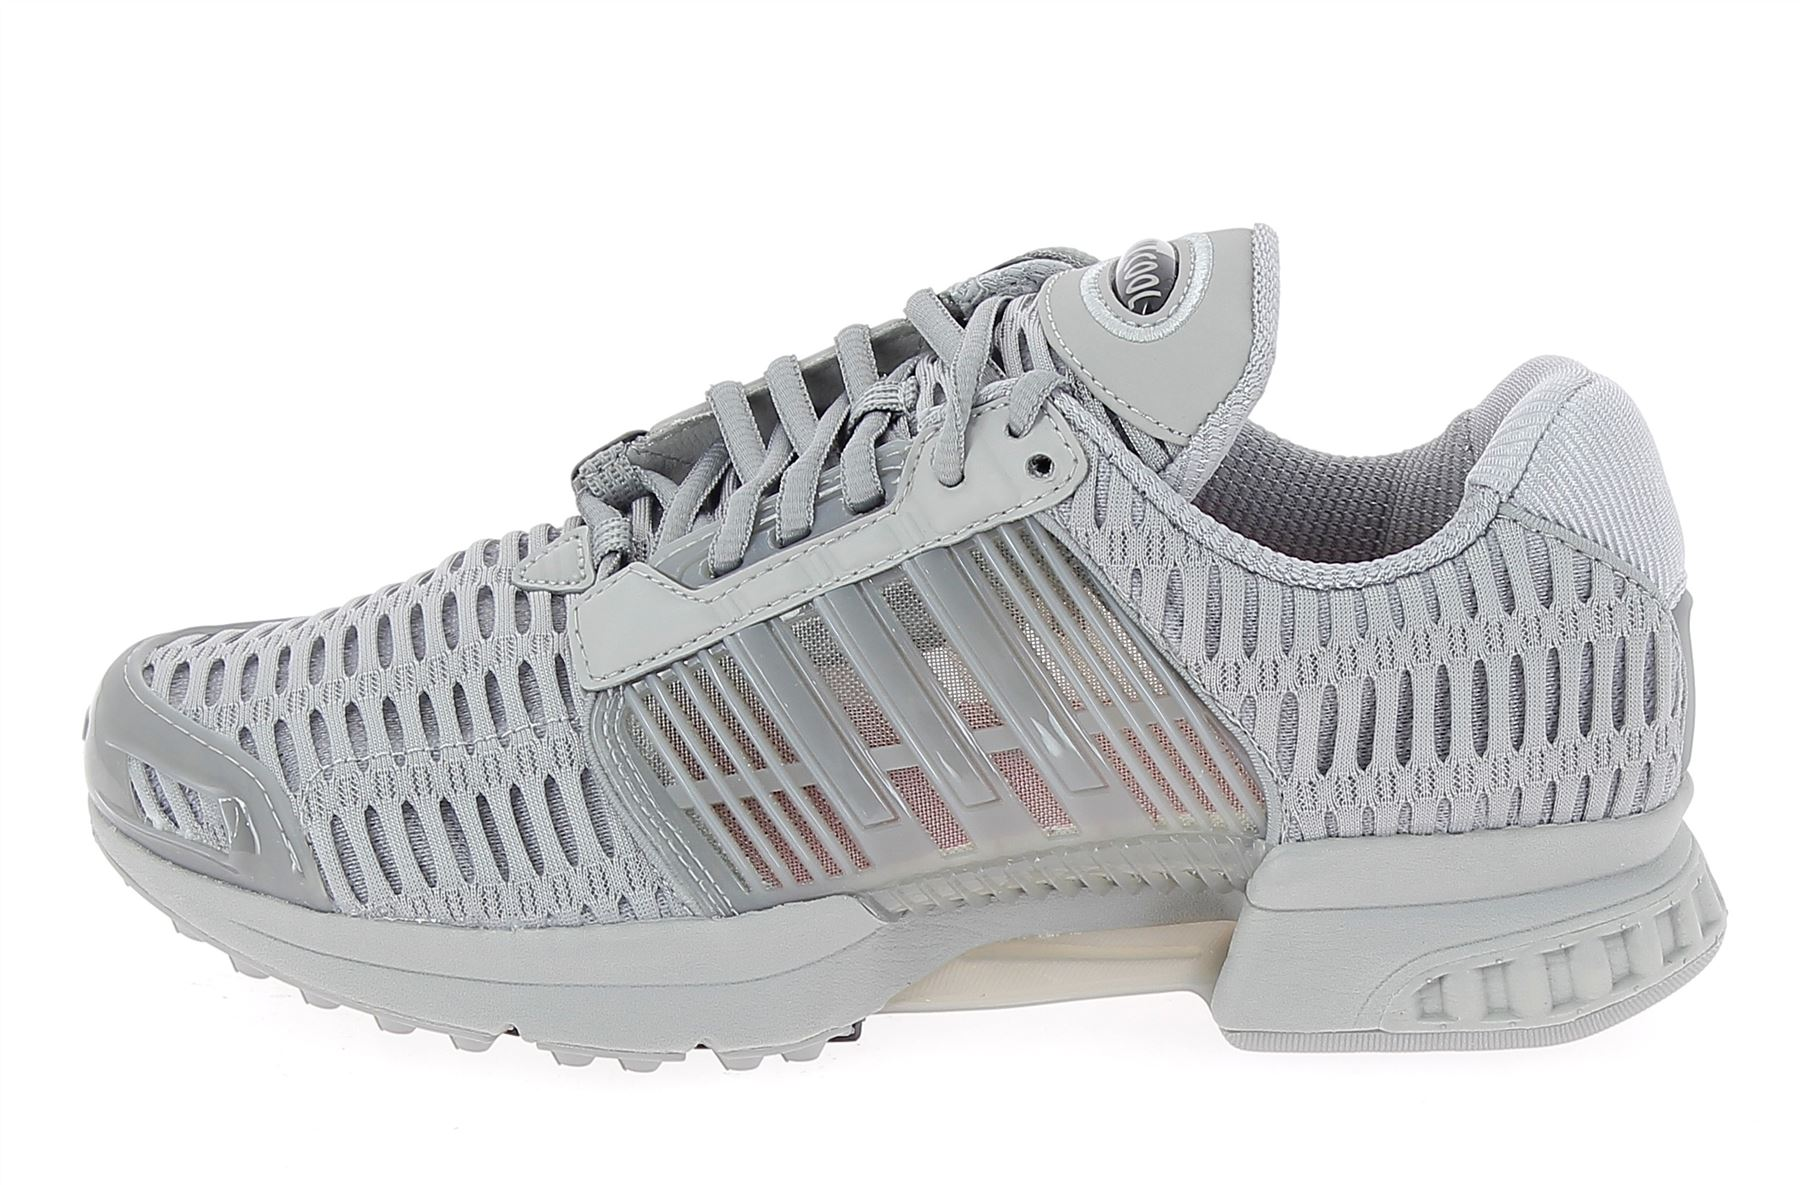 Details about adidas Originals ClimaCool 1 Trainers Mens Grey Sneakers Shoes Footwear